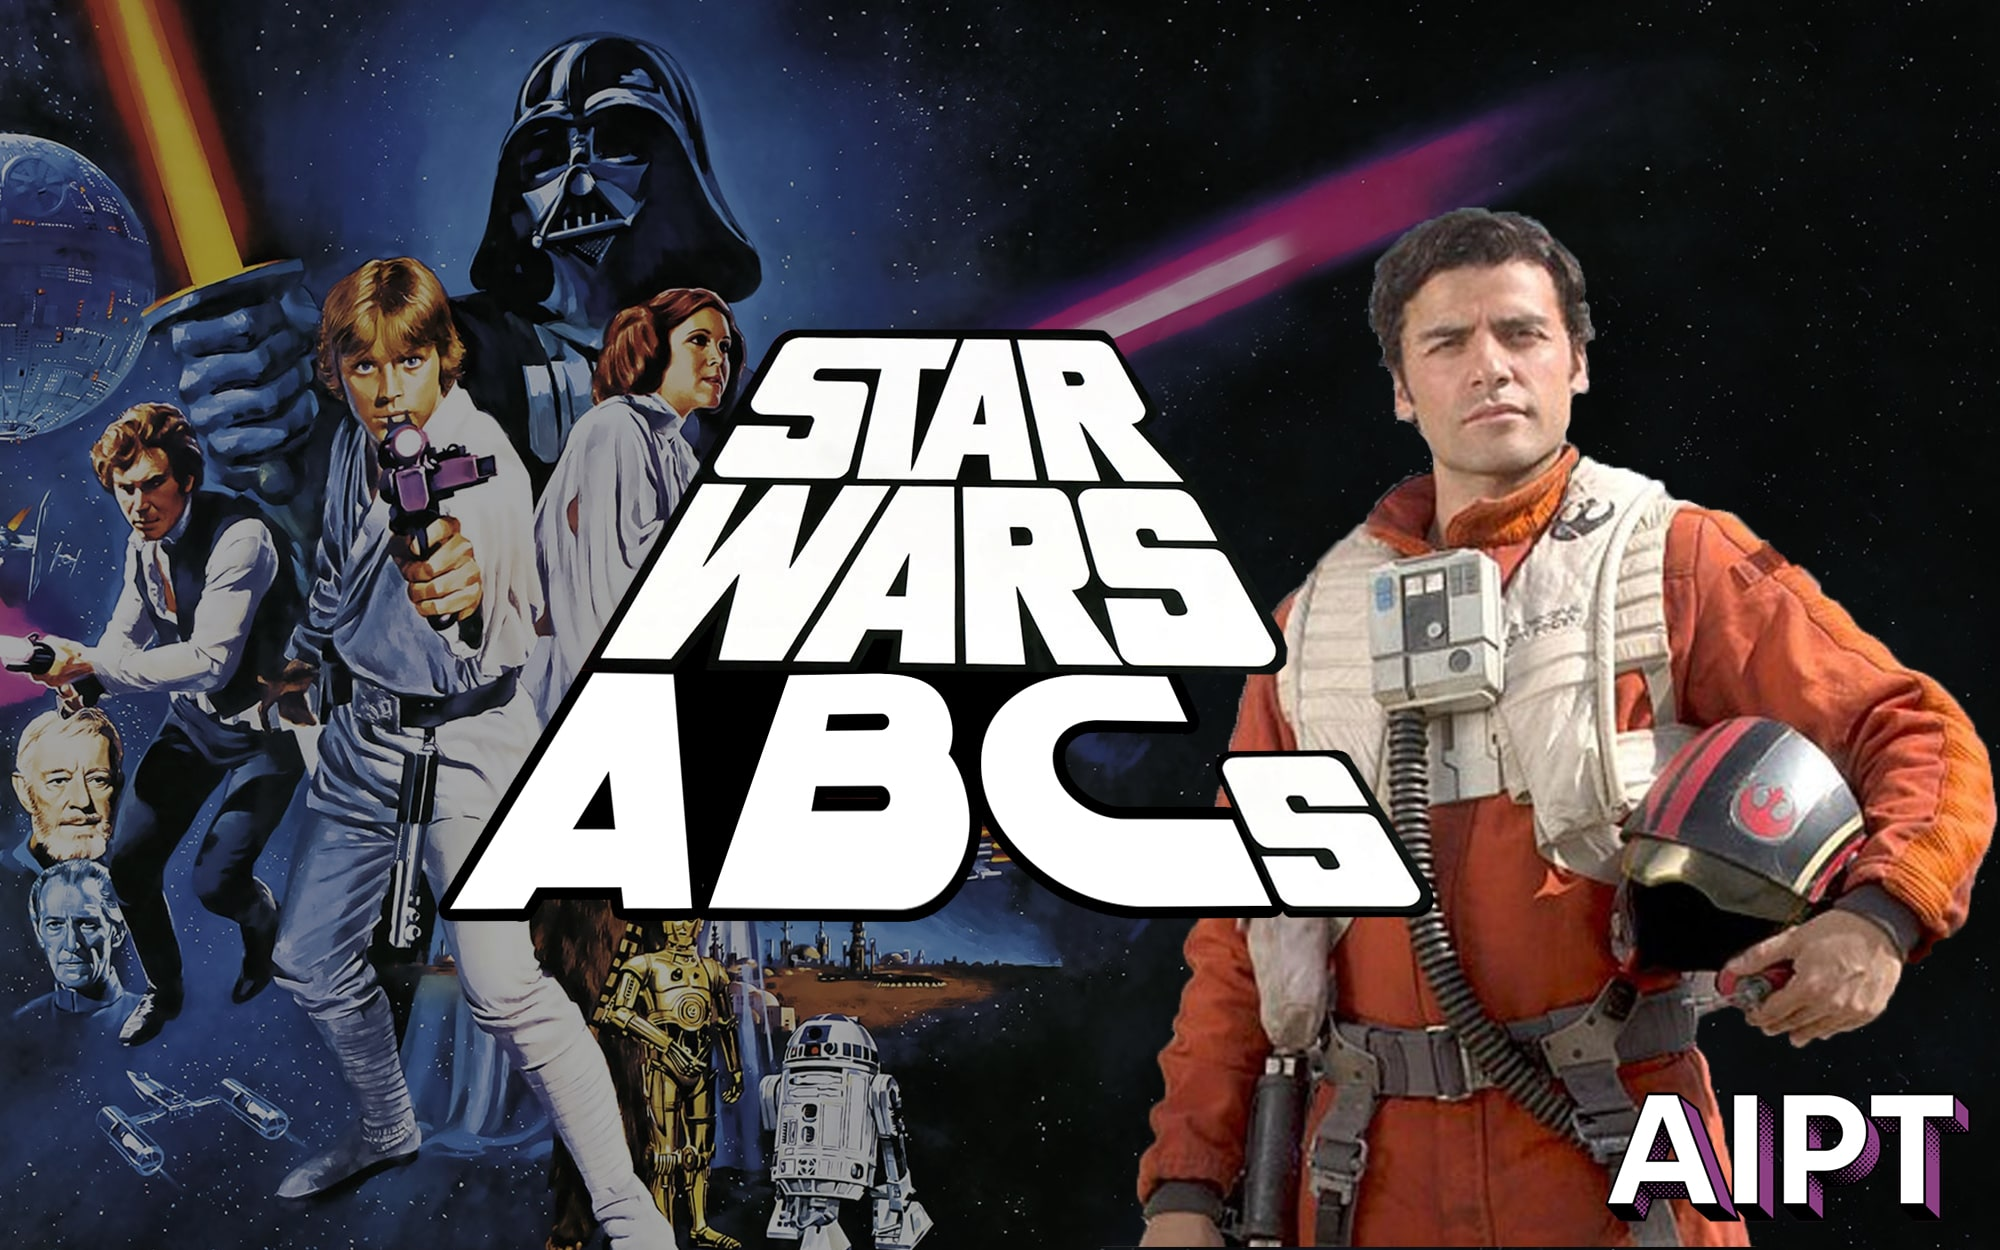 Star Wars ABCs: P is for Poe Dameron